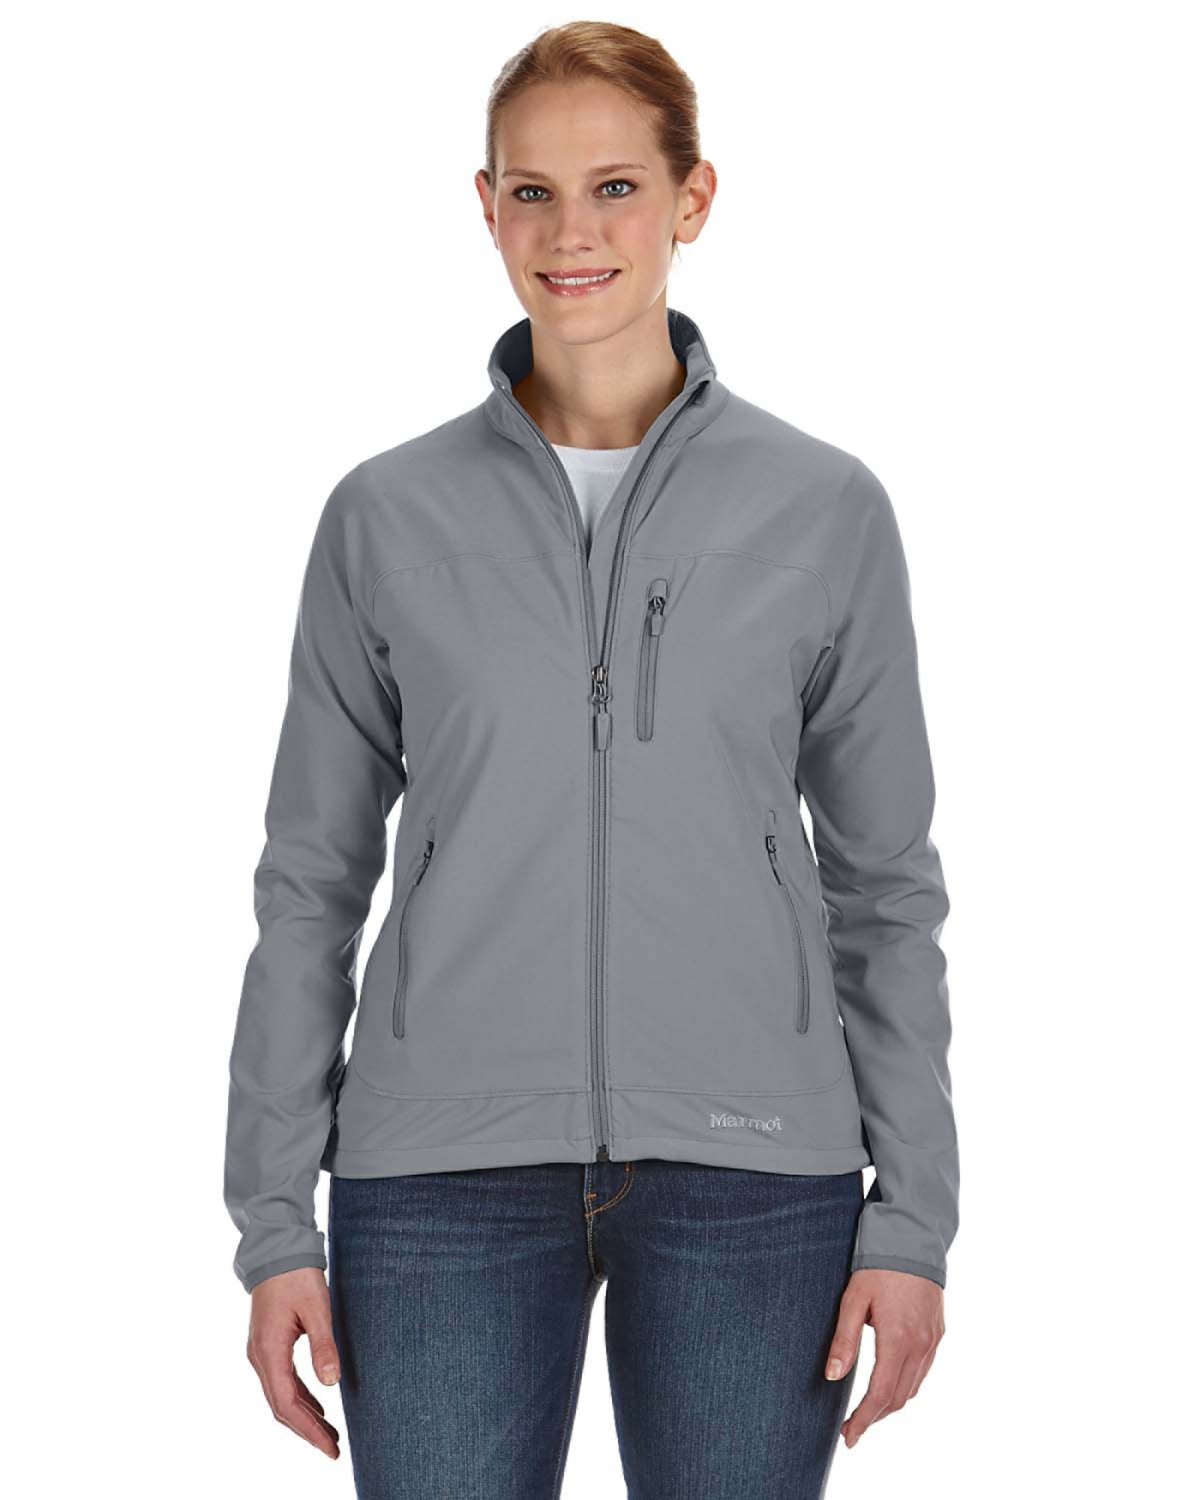 Marmot - 98300, Ladies' Tempo Jacket, Embroidery, Screen Printing - Logo Masters International